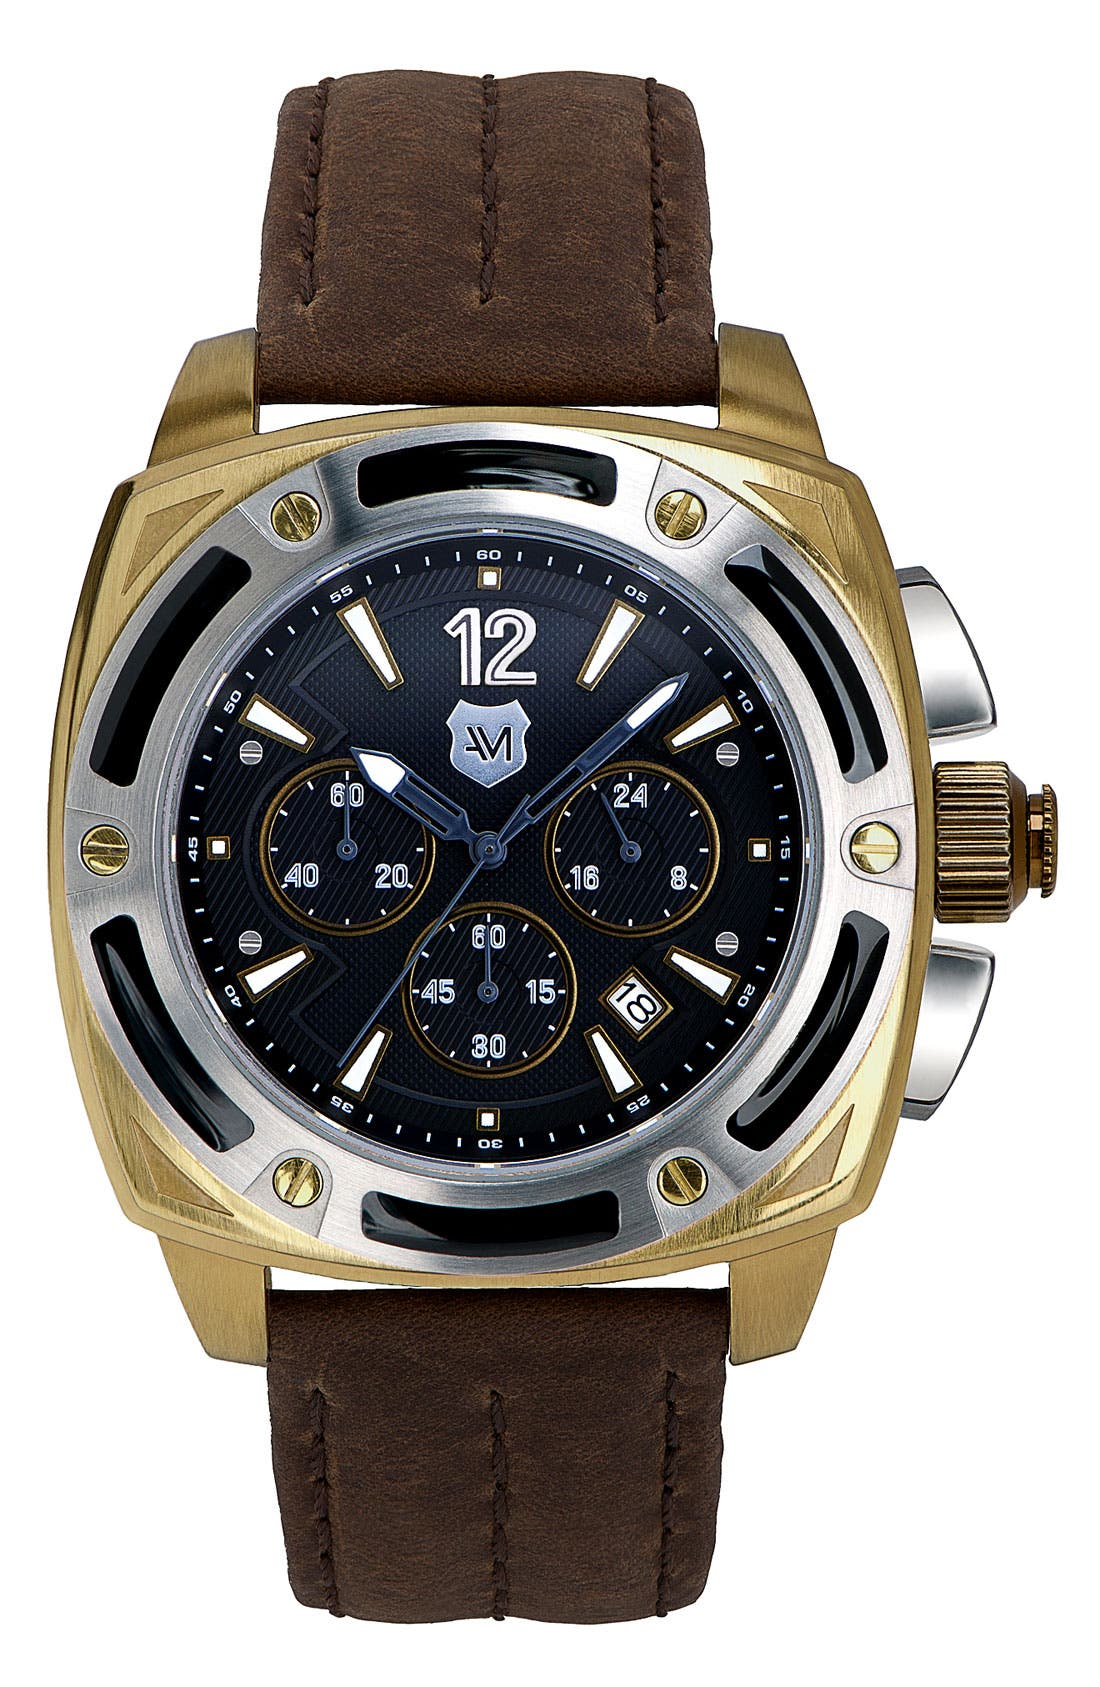 Main Image - Andrew Marc Watches 'G-III Bomber' Chronograph Watch, 46mm